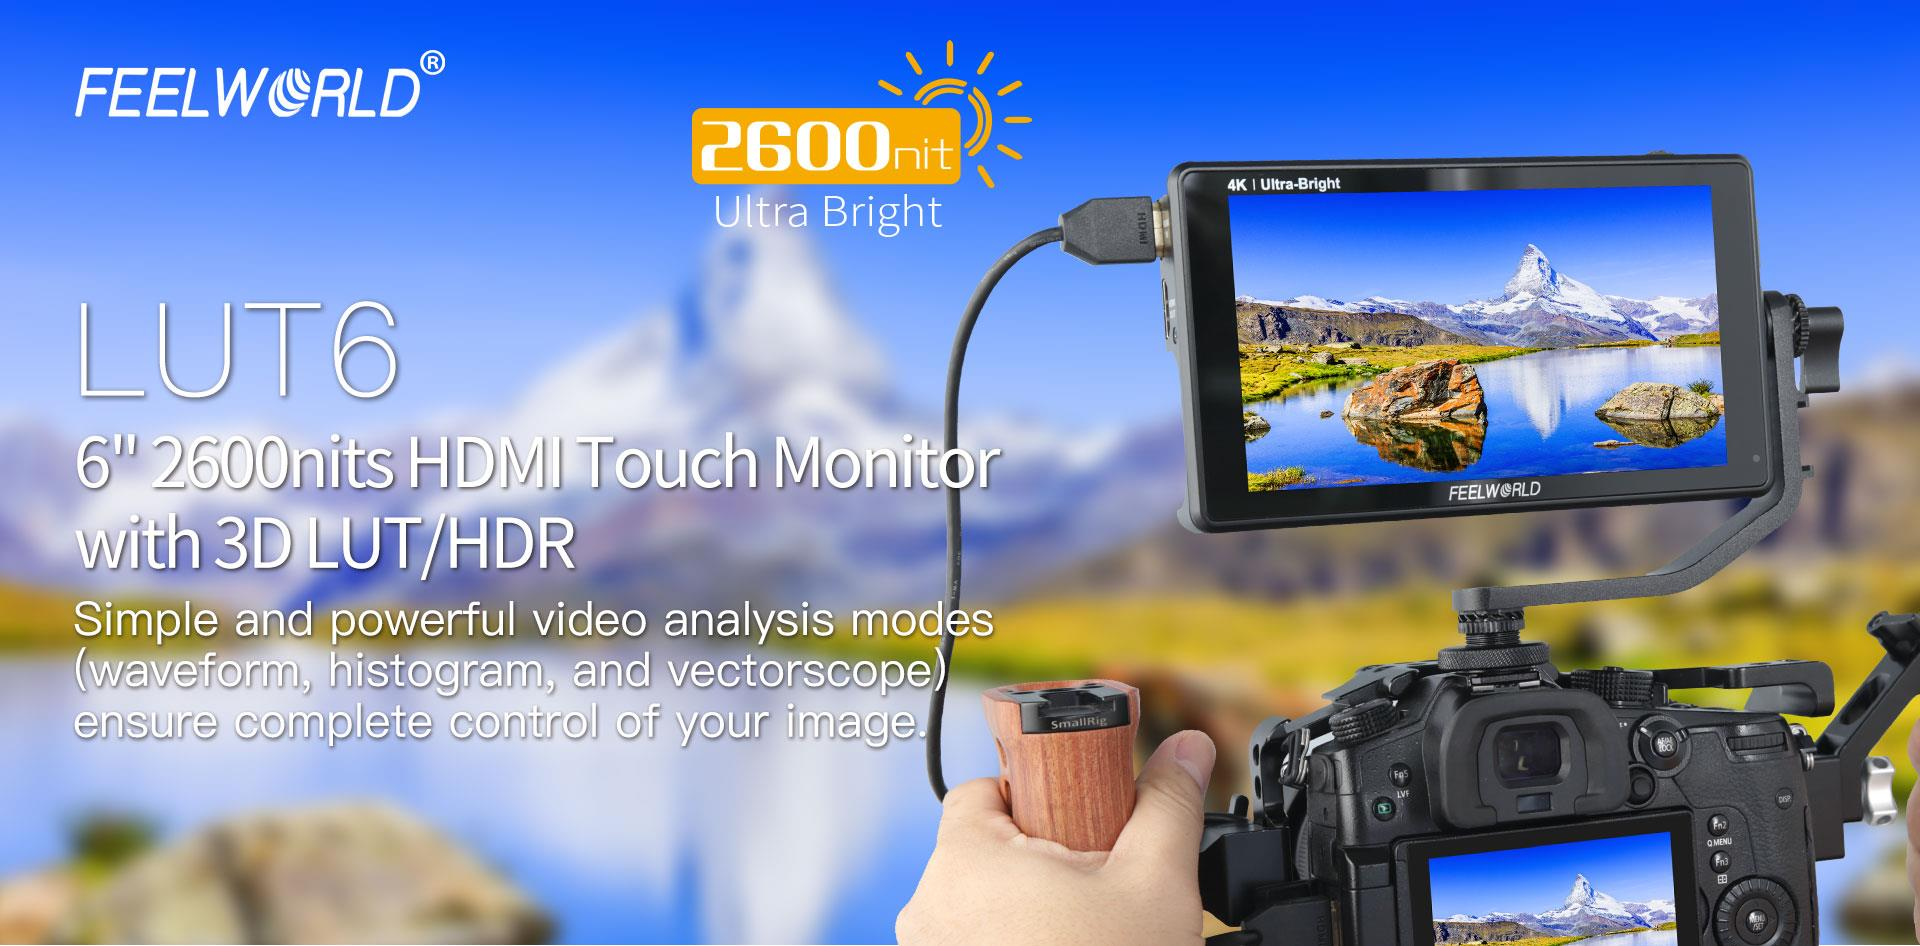 FeelWorld LUT6 6 Inch HDR/3D LUT 2600nits 4K HDMI Touch Screen On-Camera Monitor